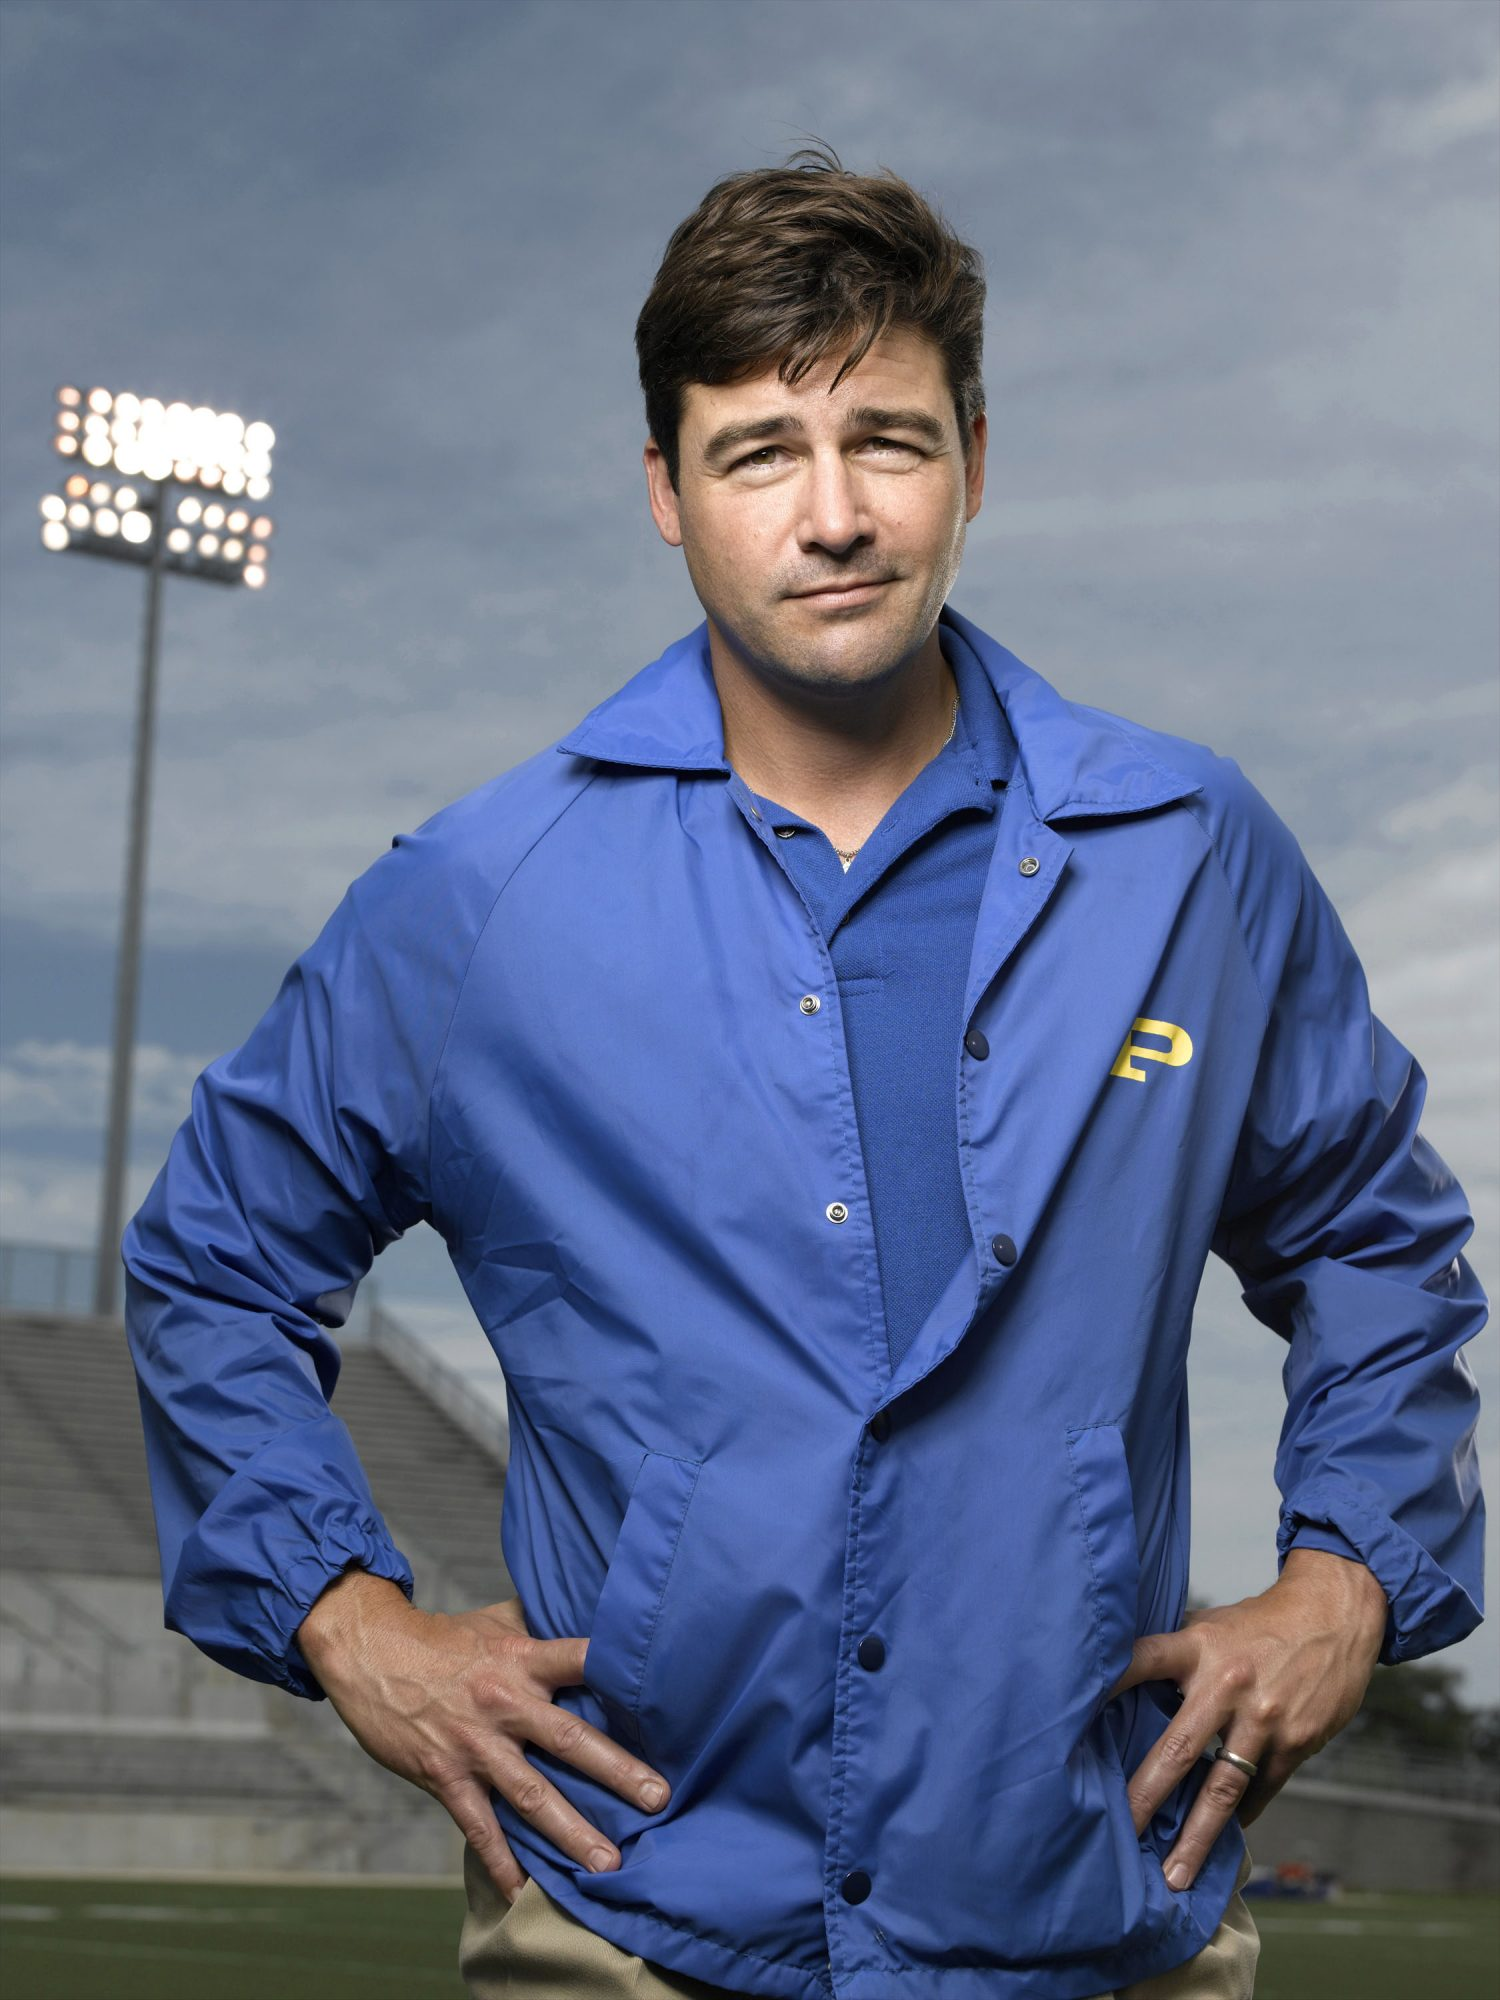 FRIDAY NIGHT LIGHTS -- Season 1 -- Pictured: Kyle Chandler as Eric Taylor  (Photo by Michael Muller/NBC/NBCU Photo Bank via Getty Images)